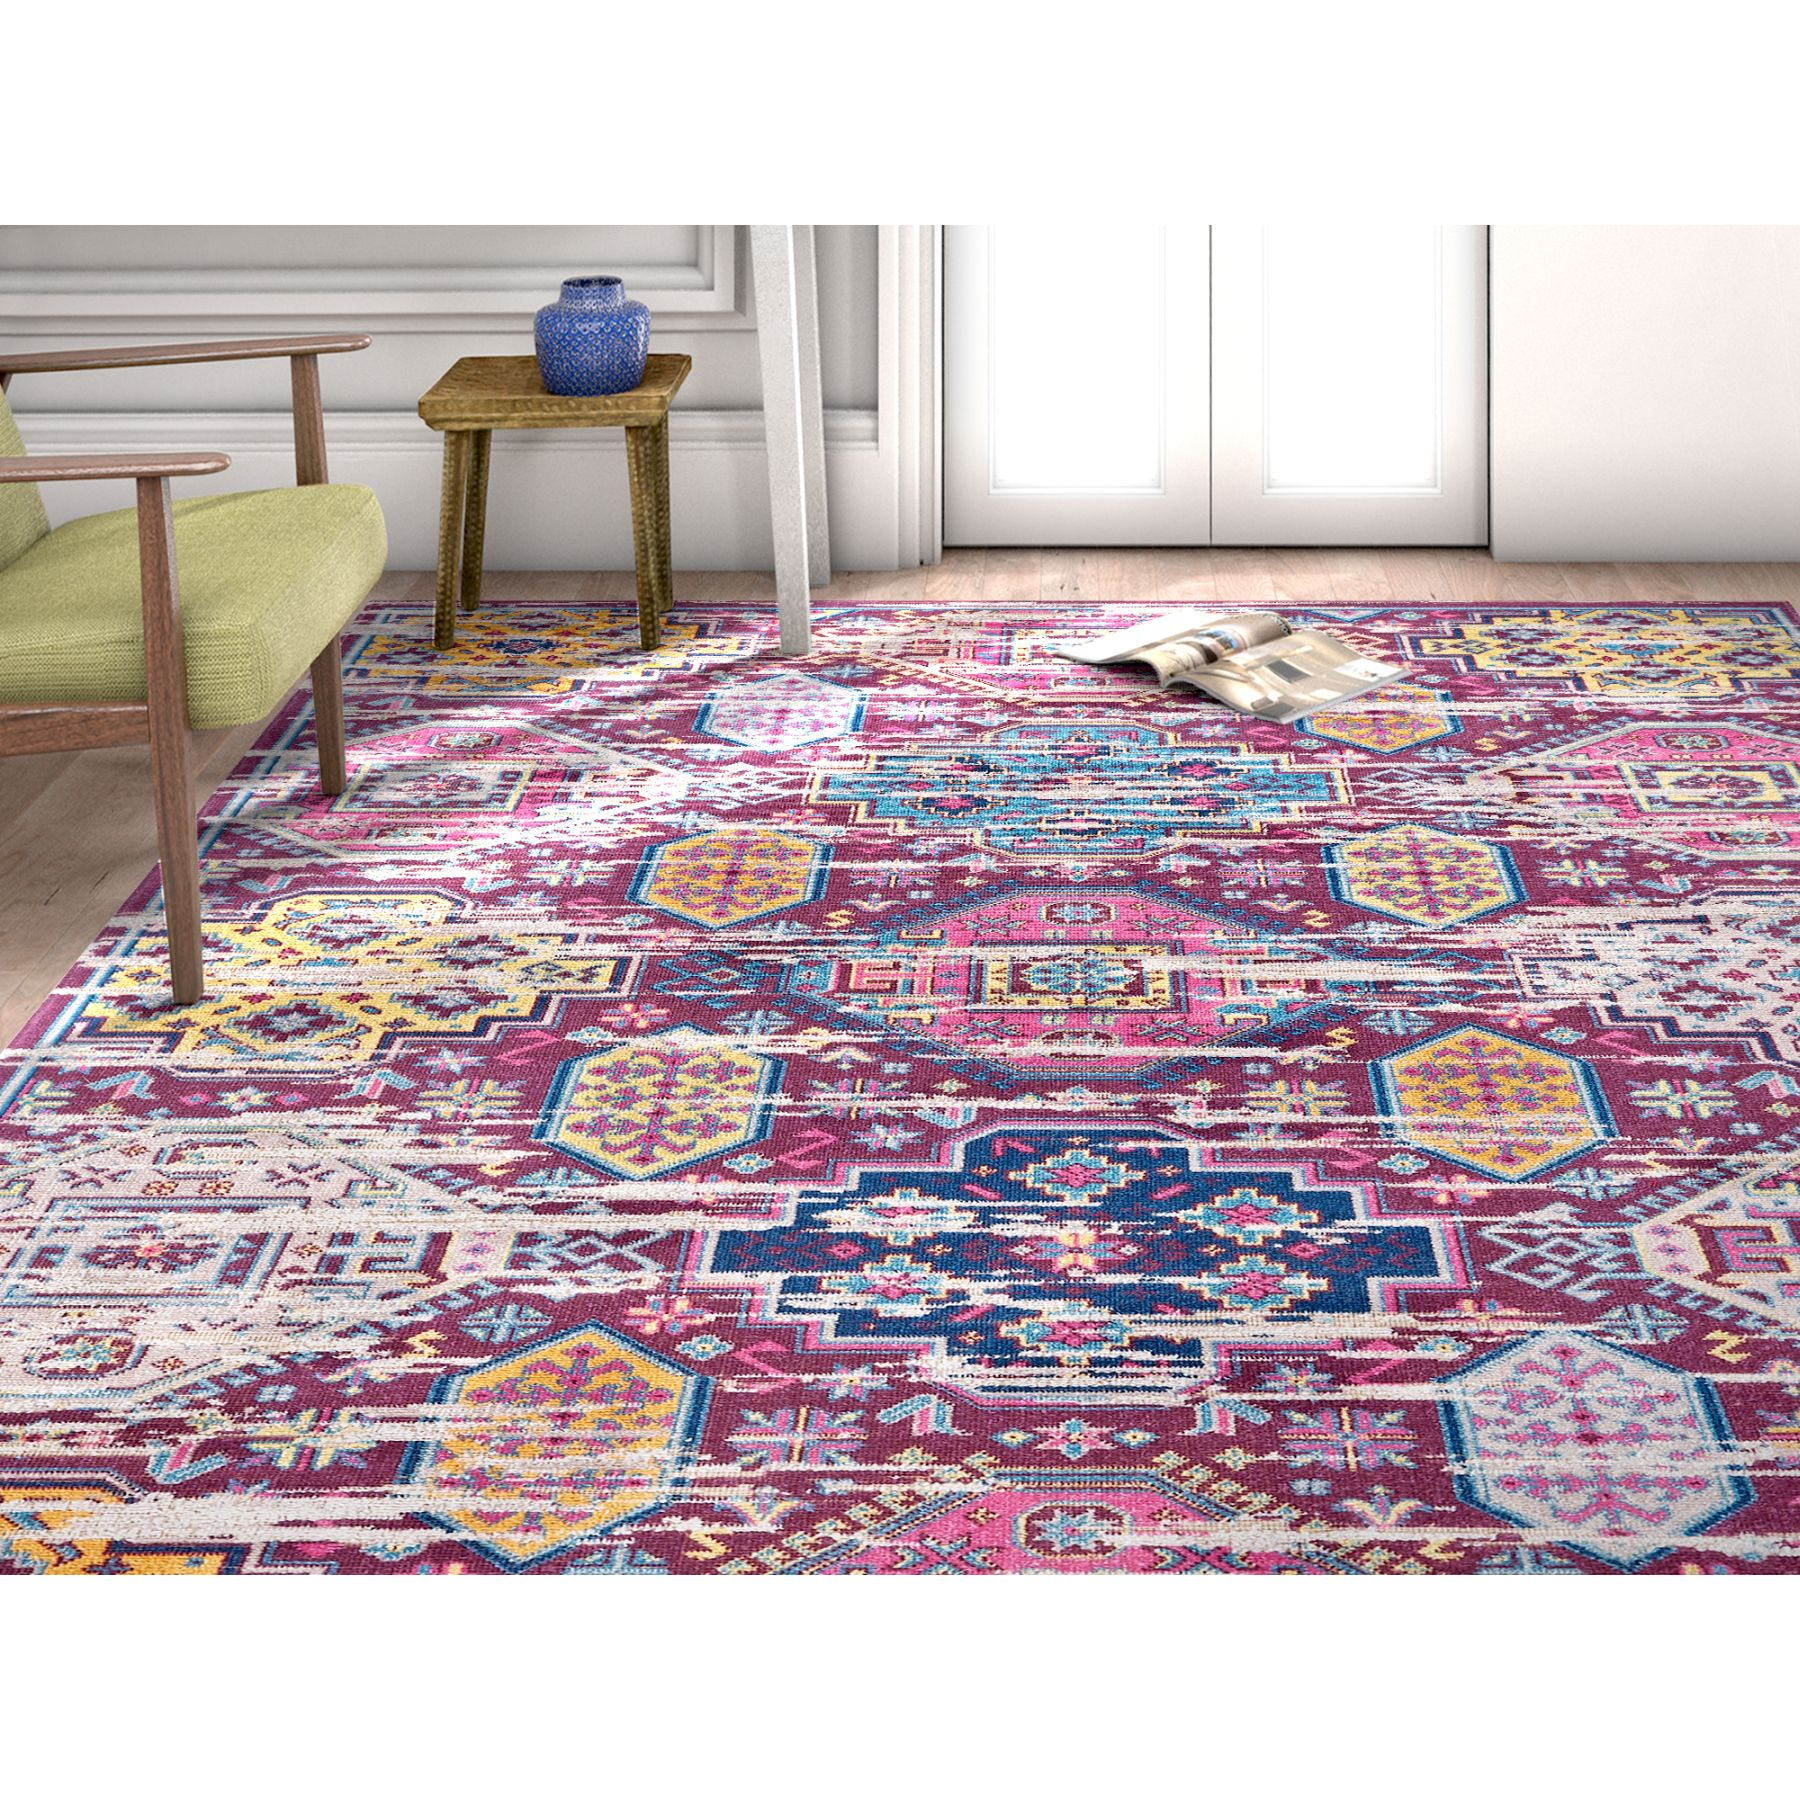 Well Woven Firenze Alora Modern Vintage Passion Area Rug